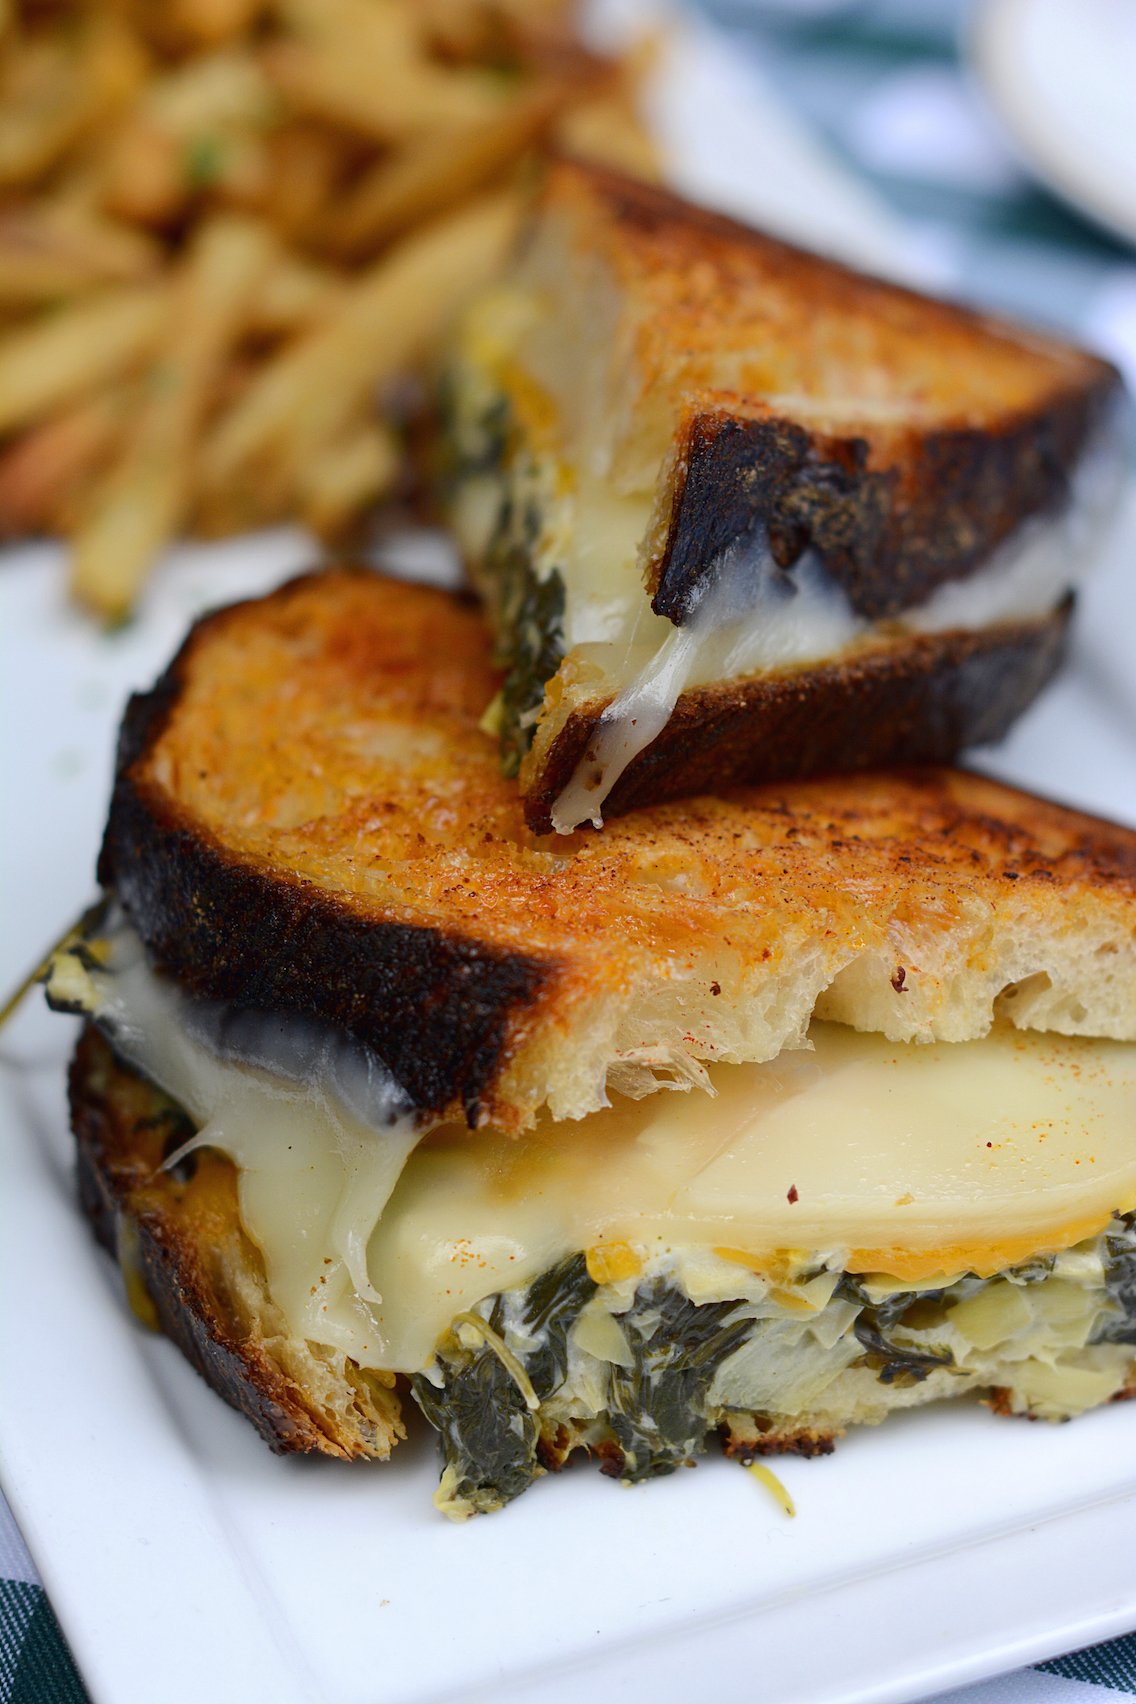 Tortoise Club Spinach and Artichoke Grilled Cheese Sandwich 2